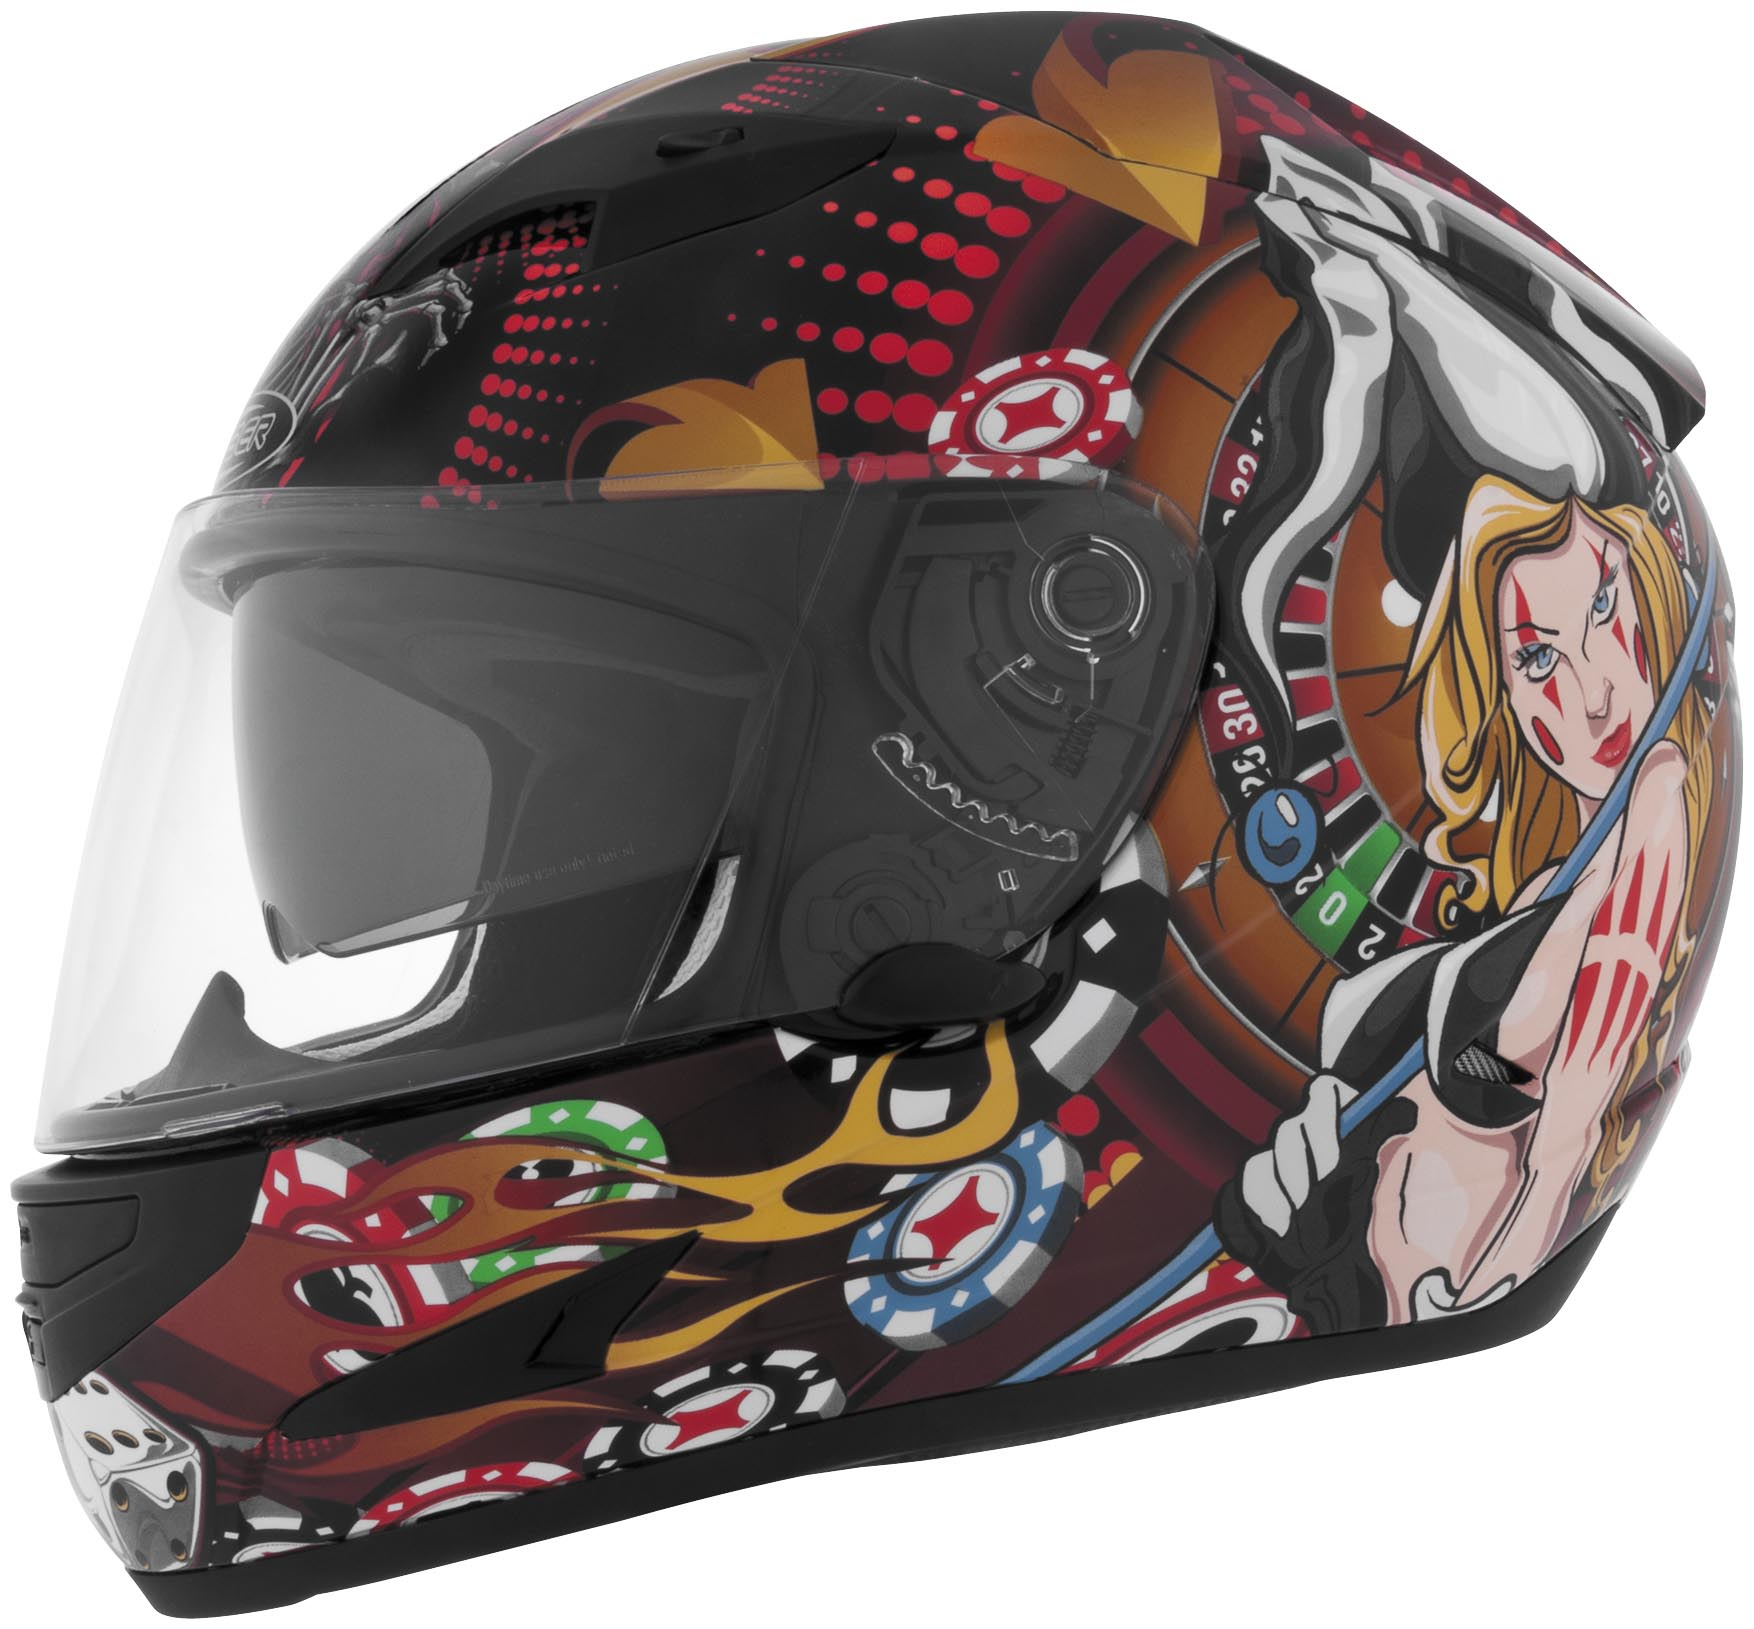 US-97 Poker Girl Graphics Helmet